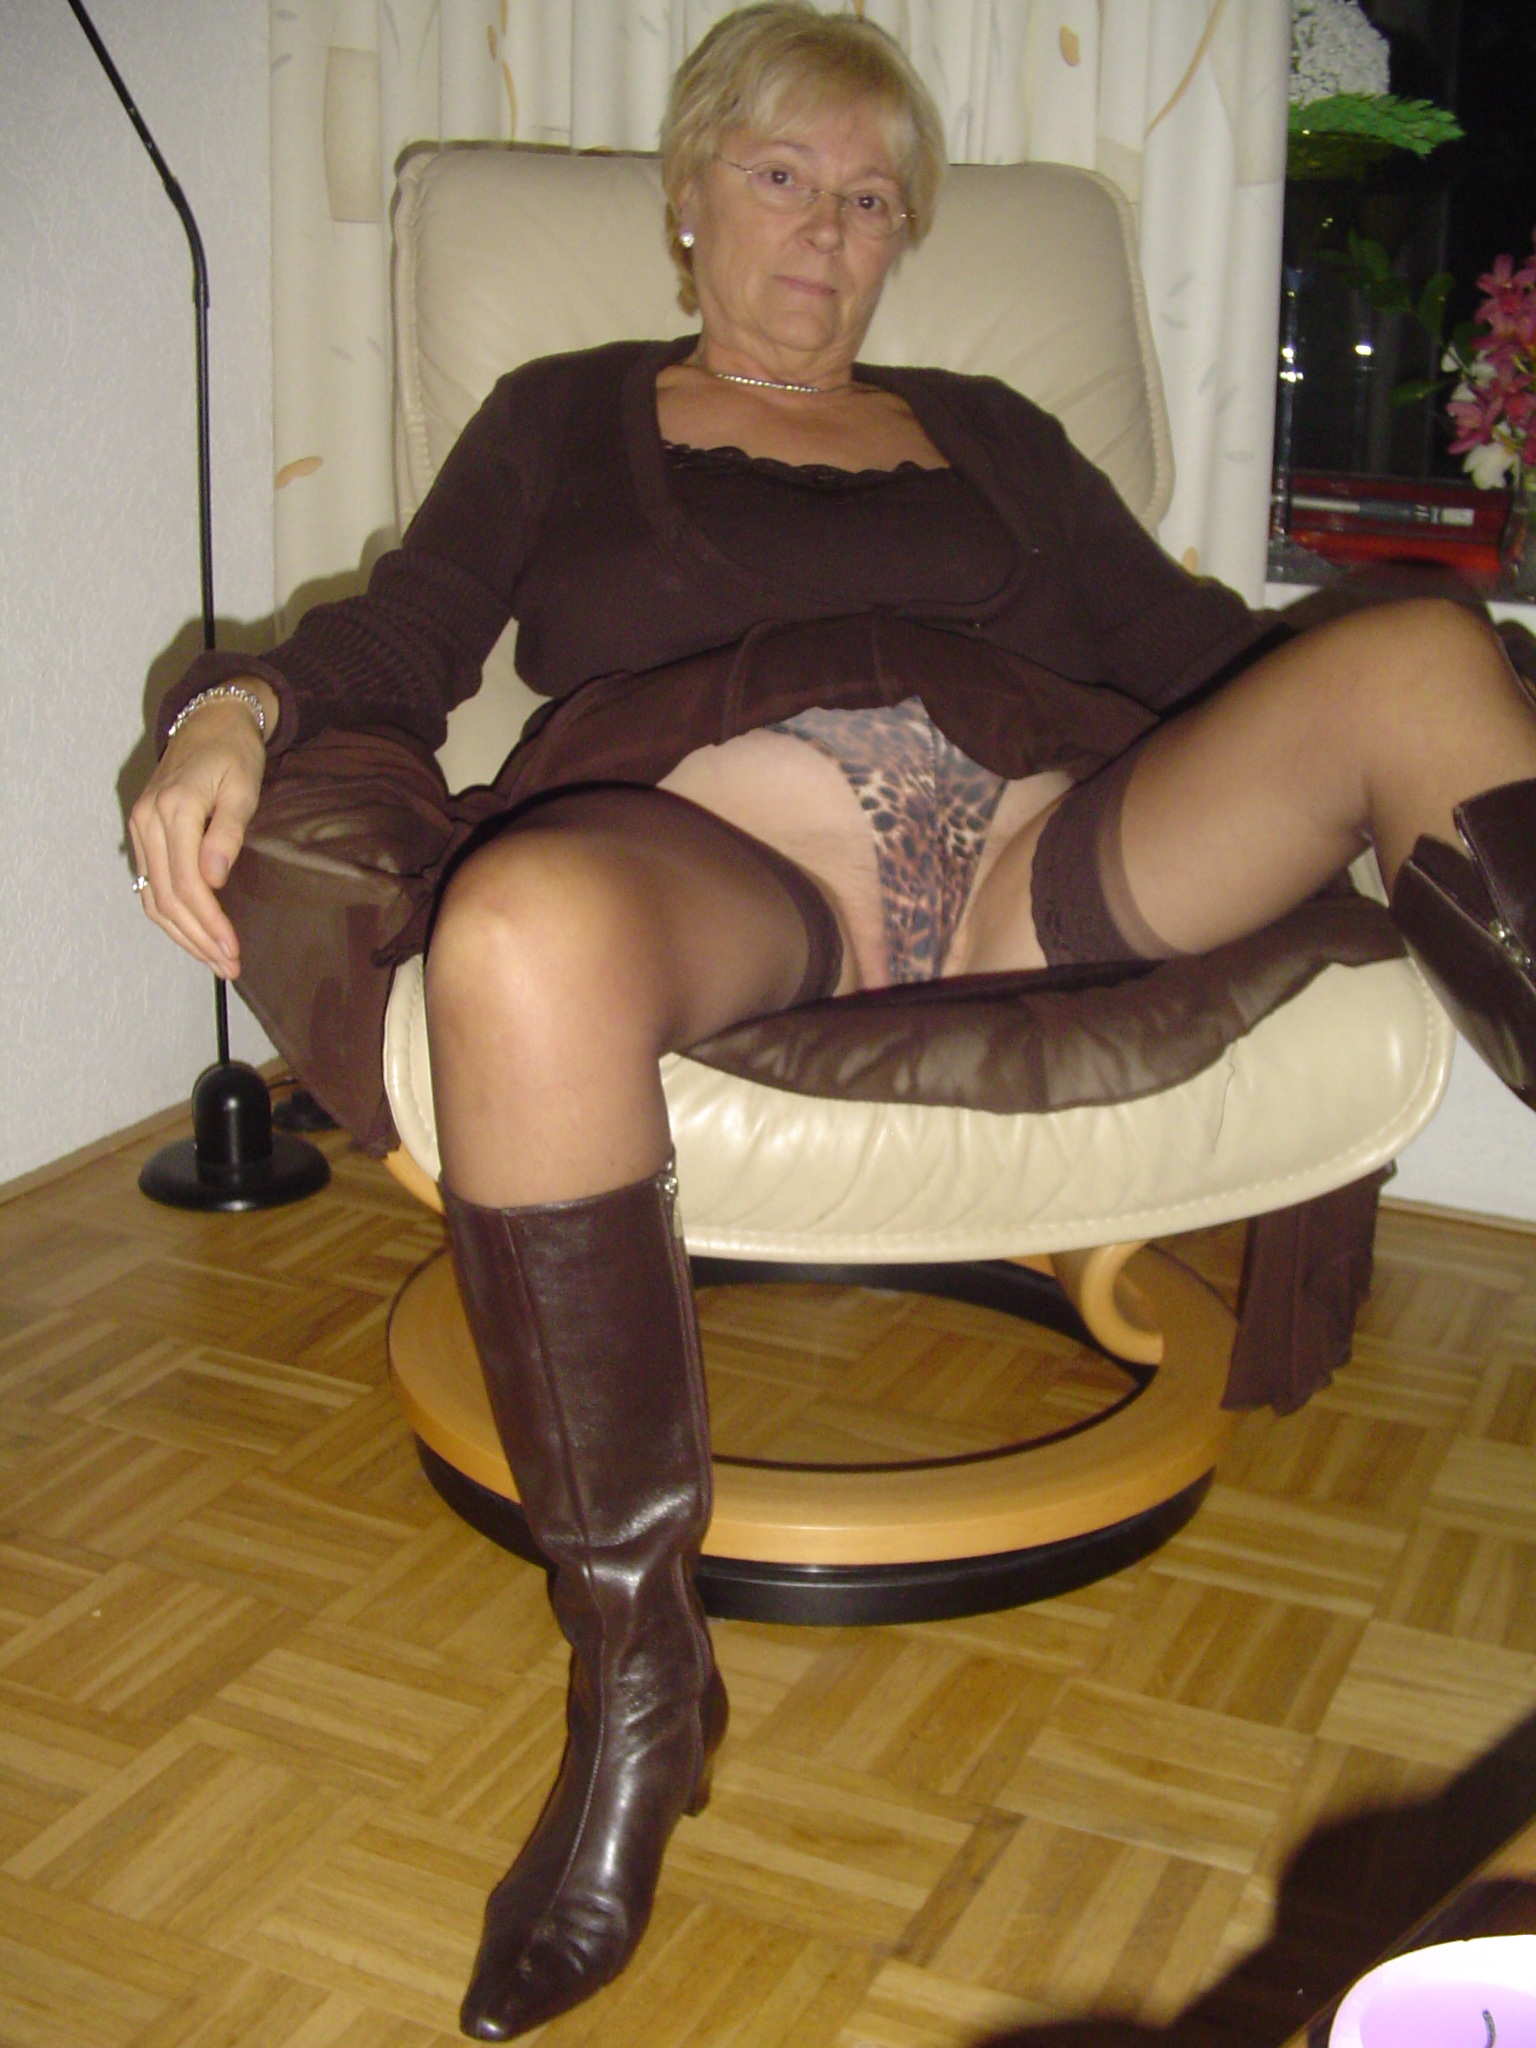 Opinion obvious. milf hot sexy consider